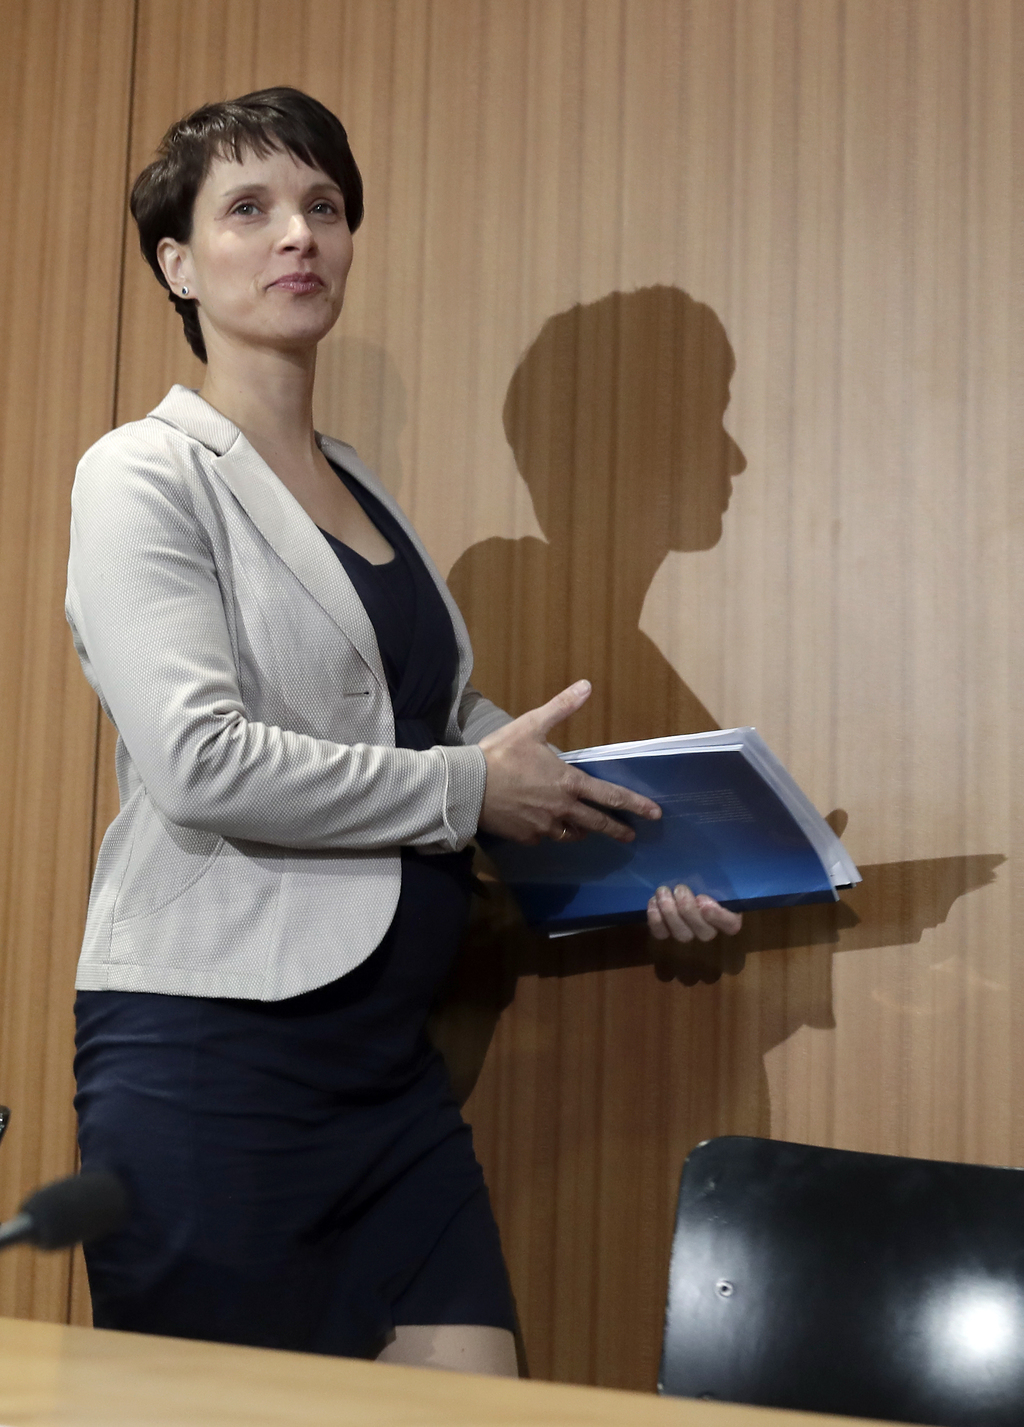 AfD chairwomen Frauke Petry arrives for a press conference of the populist 'Alternative for Germany' party , AfD in Berlin, Germany, Th...